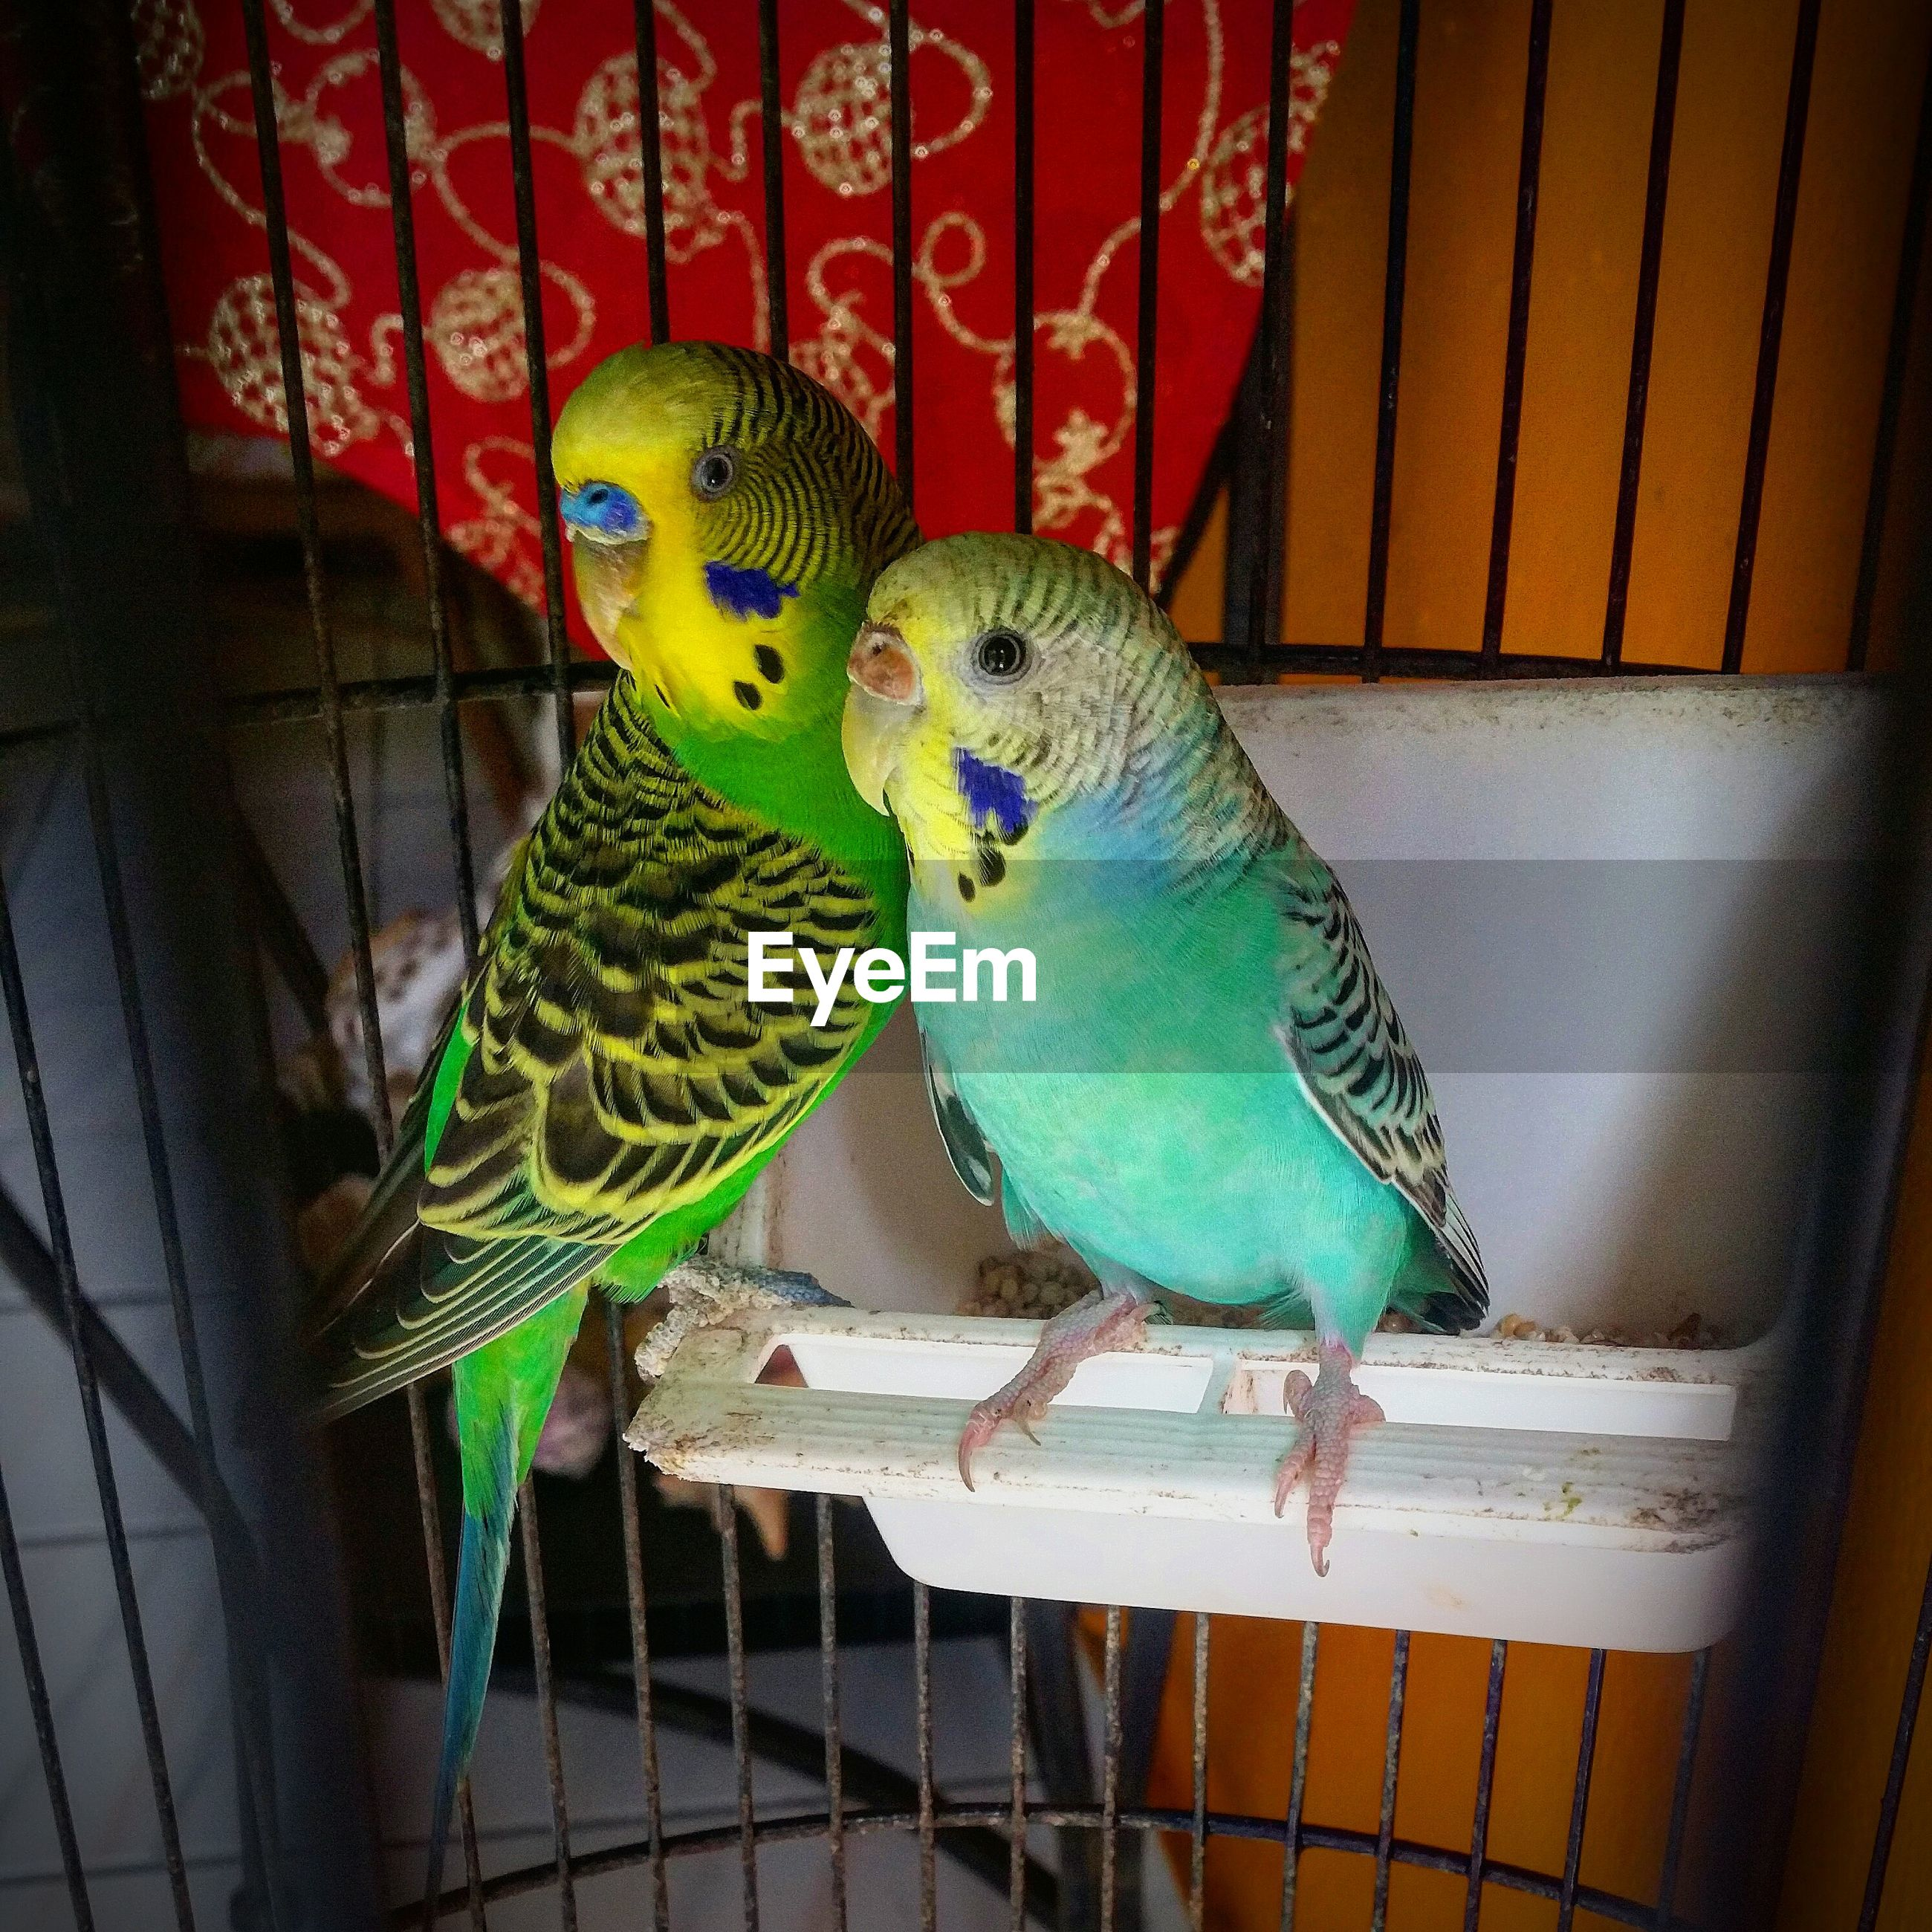 budgerigar, animal themes, bird, cage, parrot, animals in captivity, birdcage, parakeet, one animal, no people, perching, domestic animals, indoors, pets, animals in the wild, close-up, day